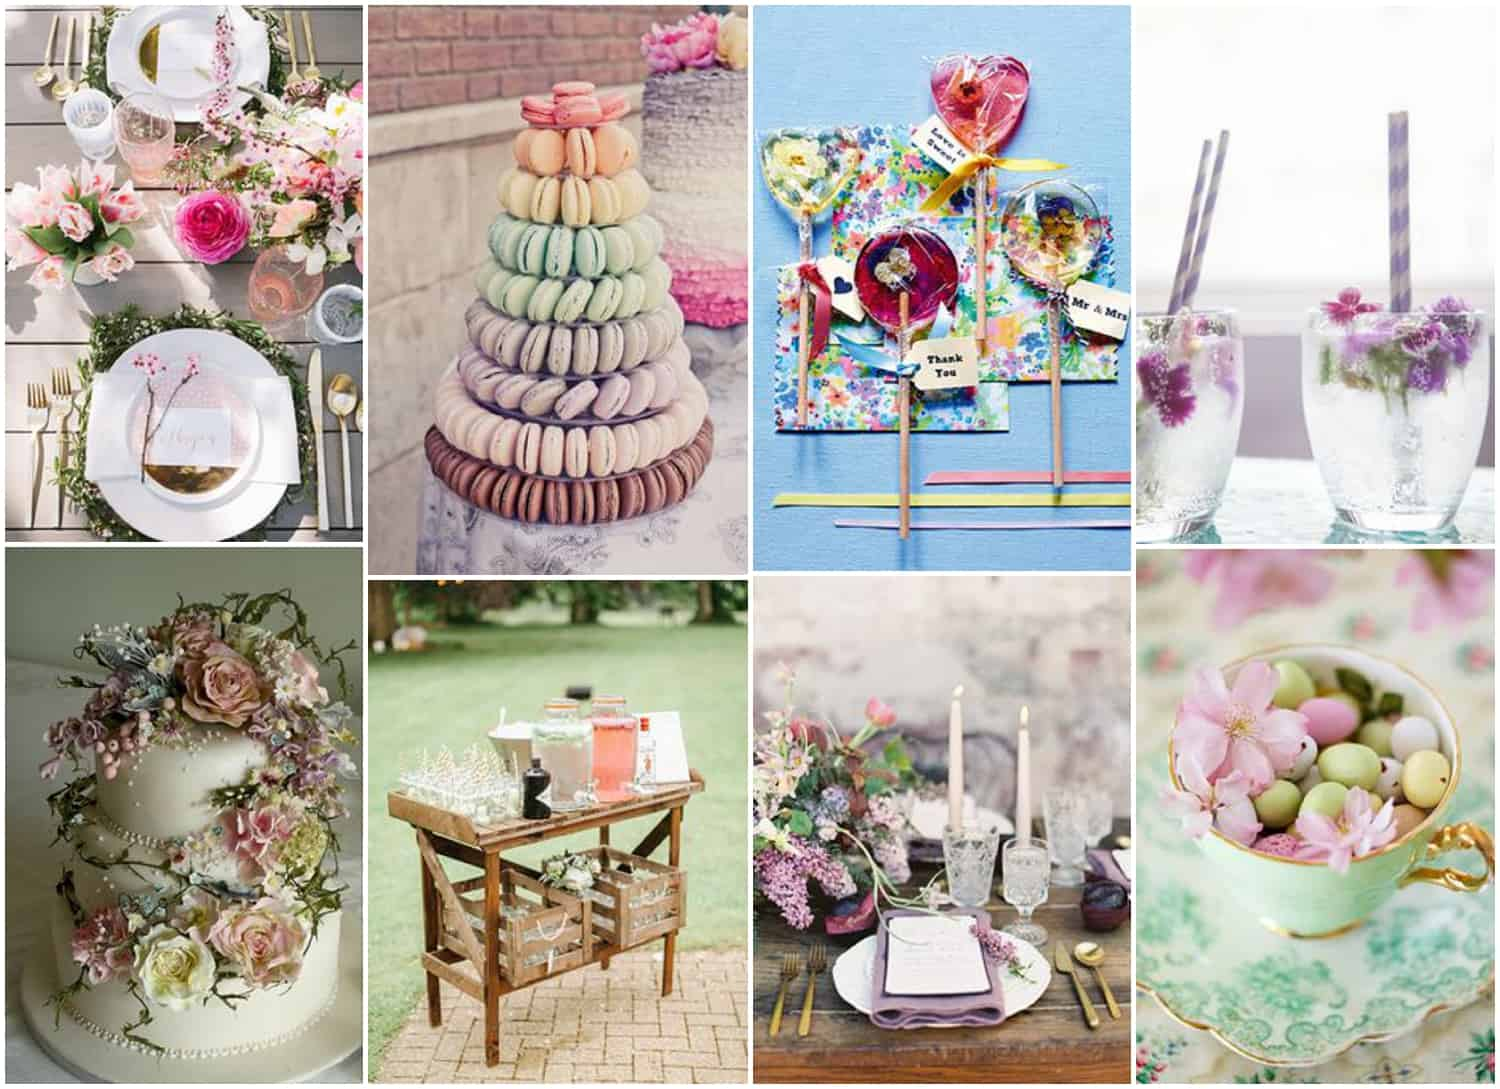 Spring food and table settings